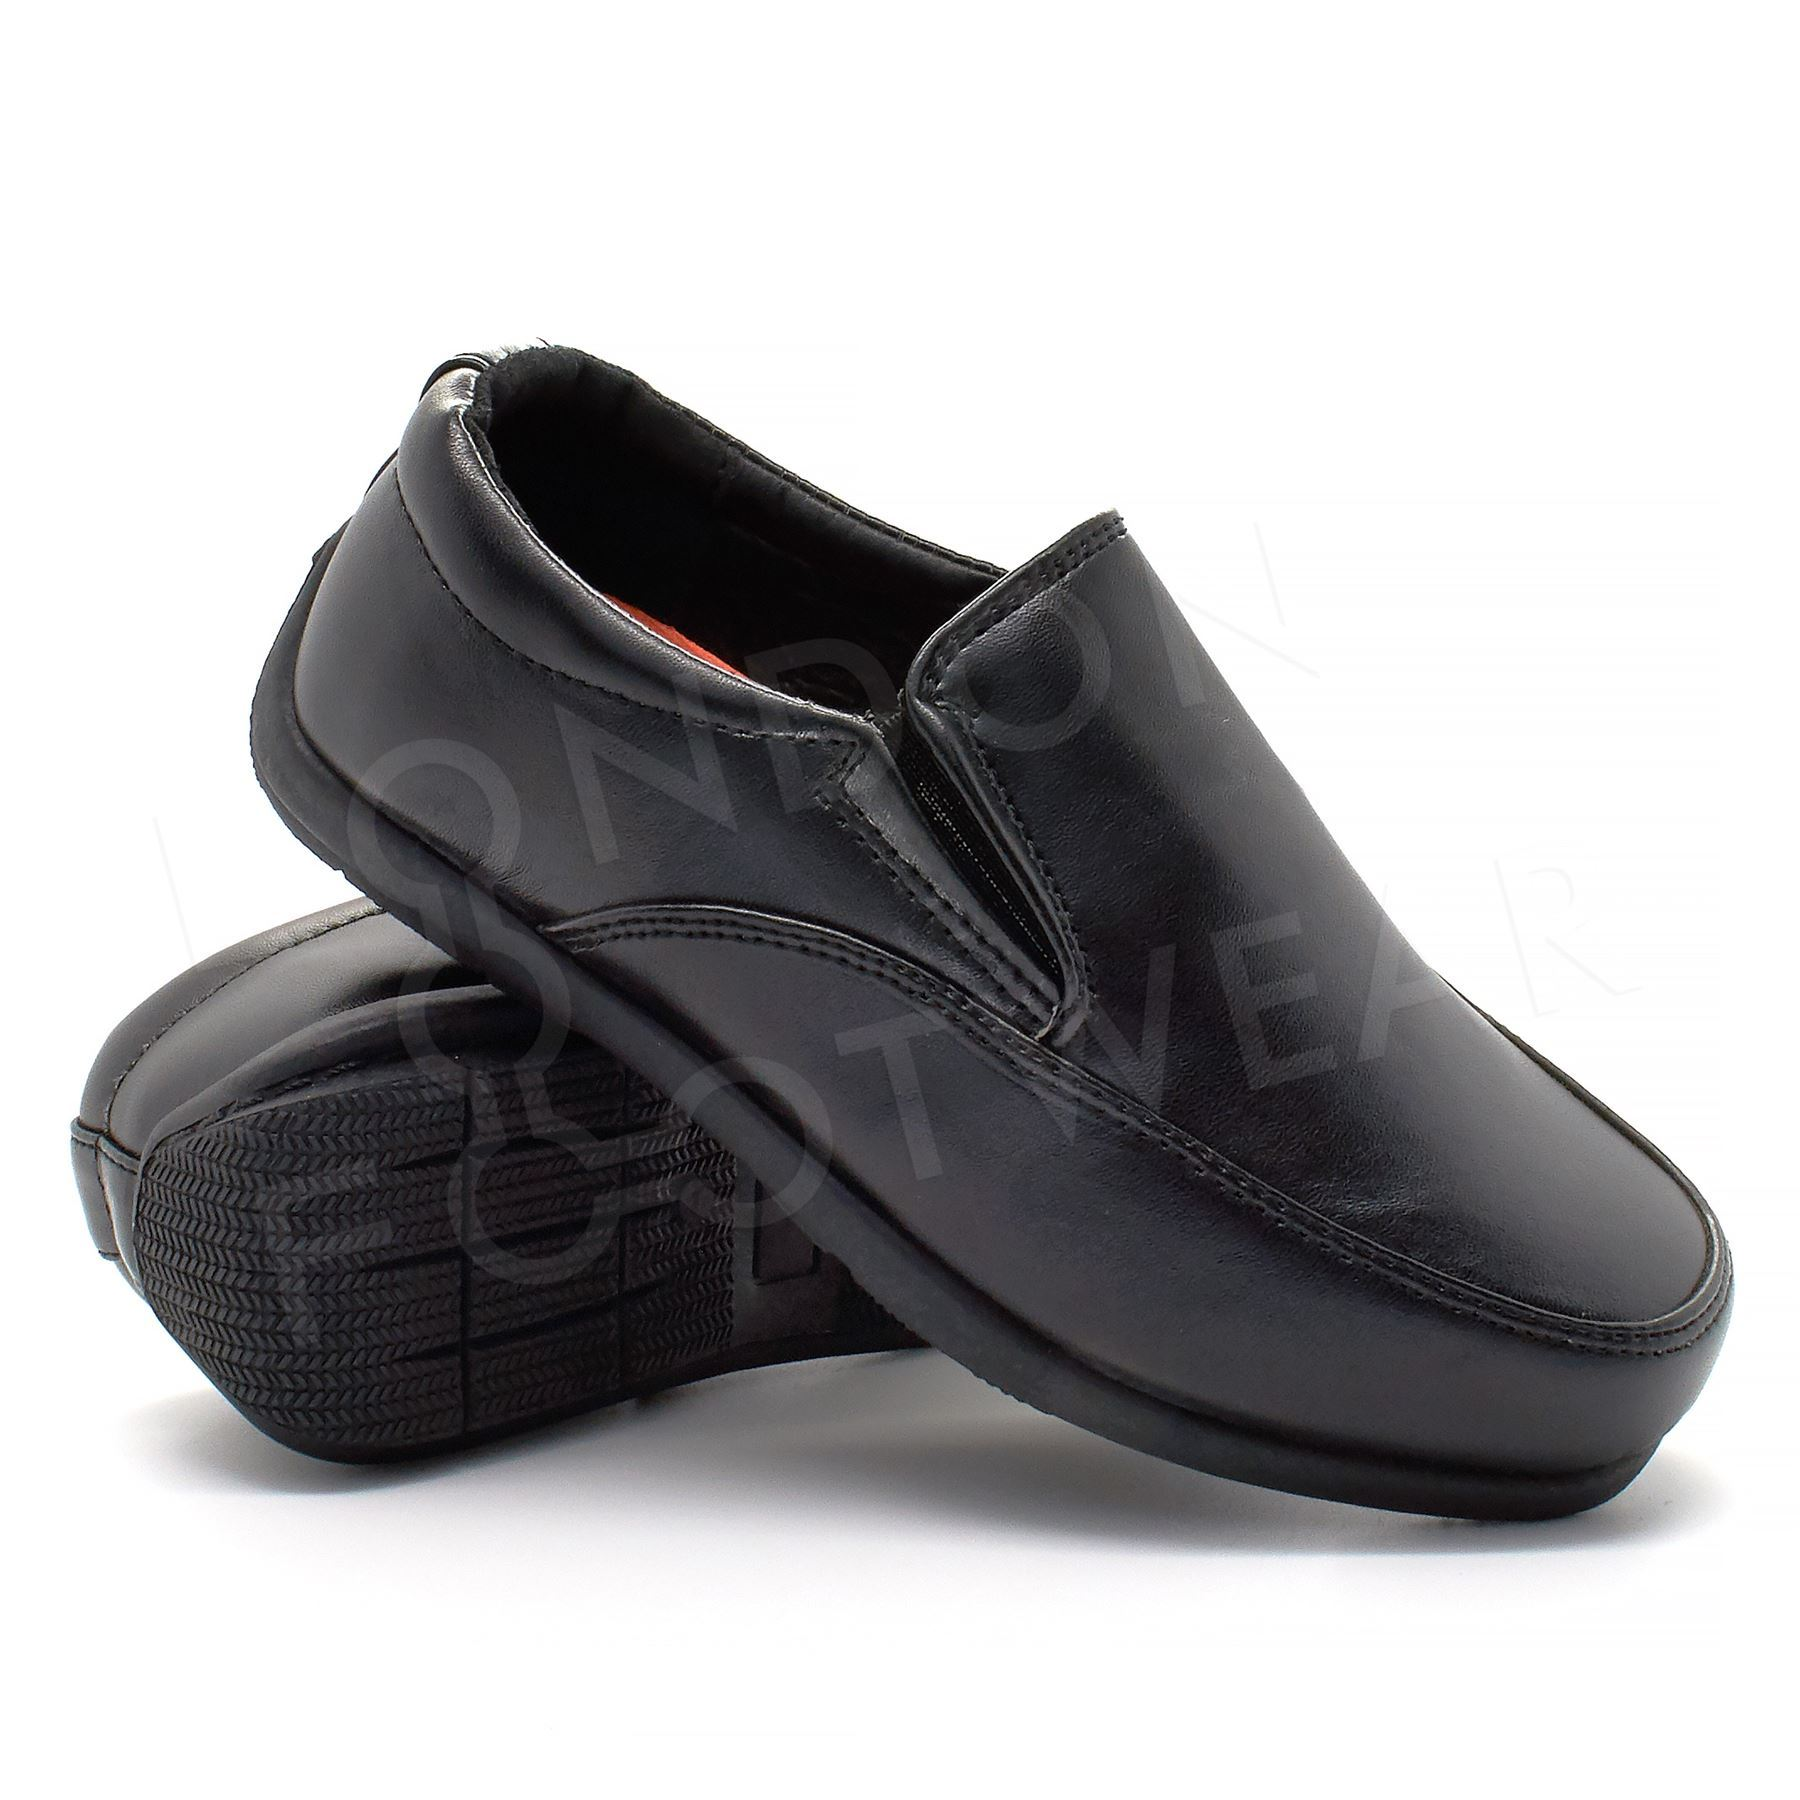 New Boys Formal Black Faux Leather Slip On Shoes Smart Party Wedding School UK